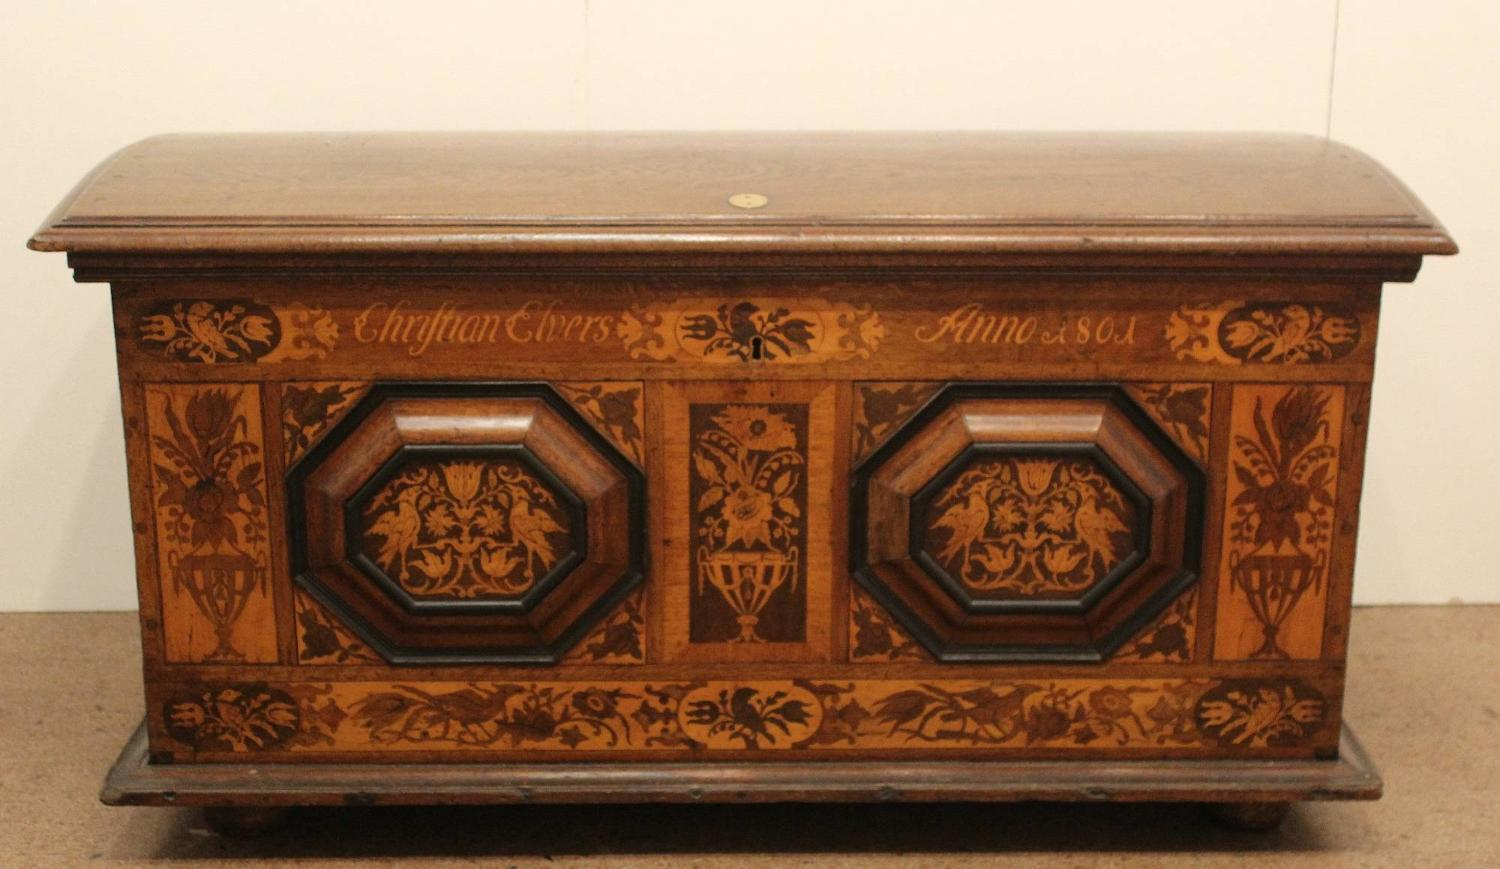 Dutch Marquetry Marriage Chest dated 1801